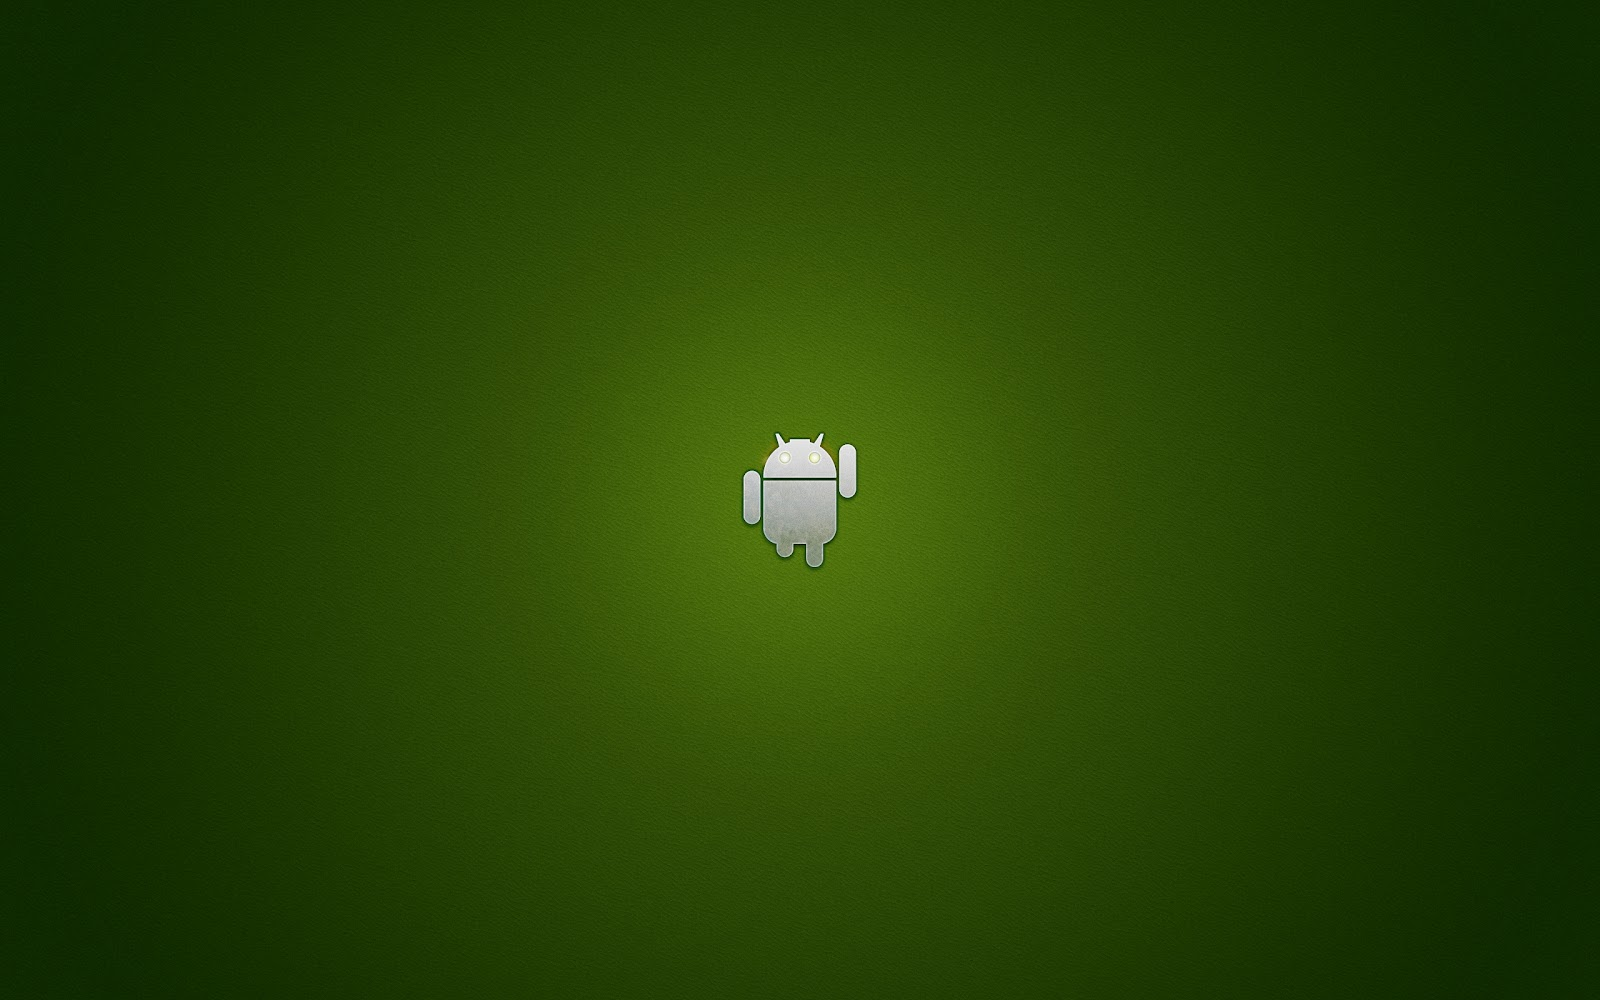 Wallpaper And Backgrounds For Android